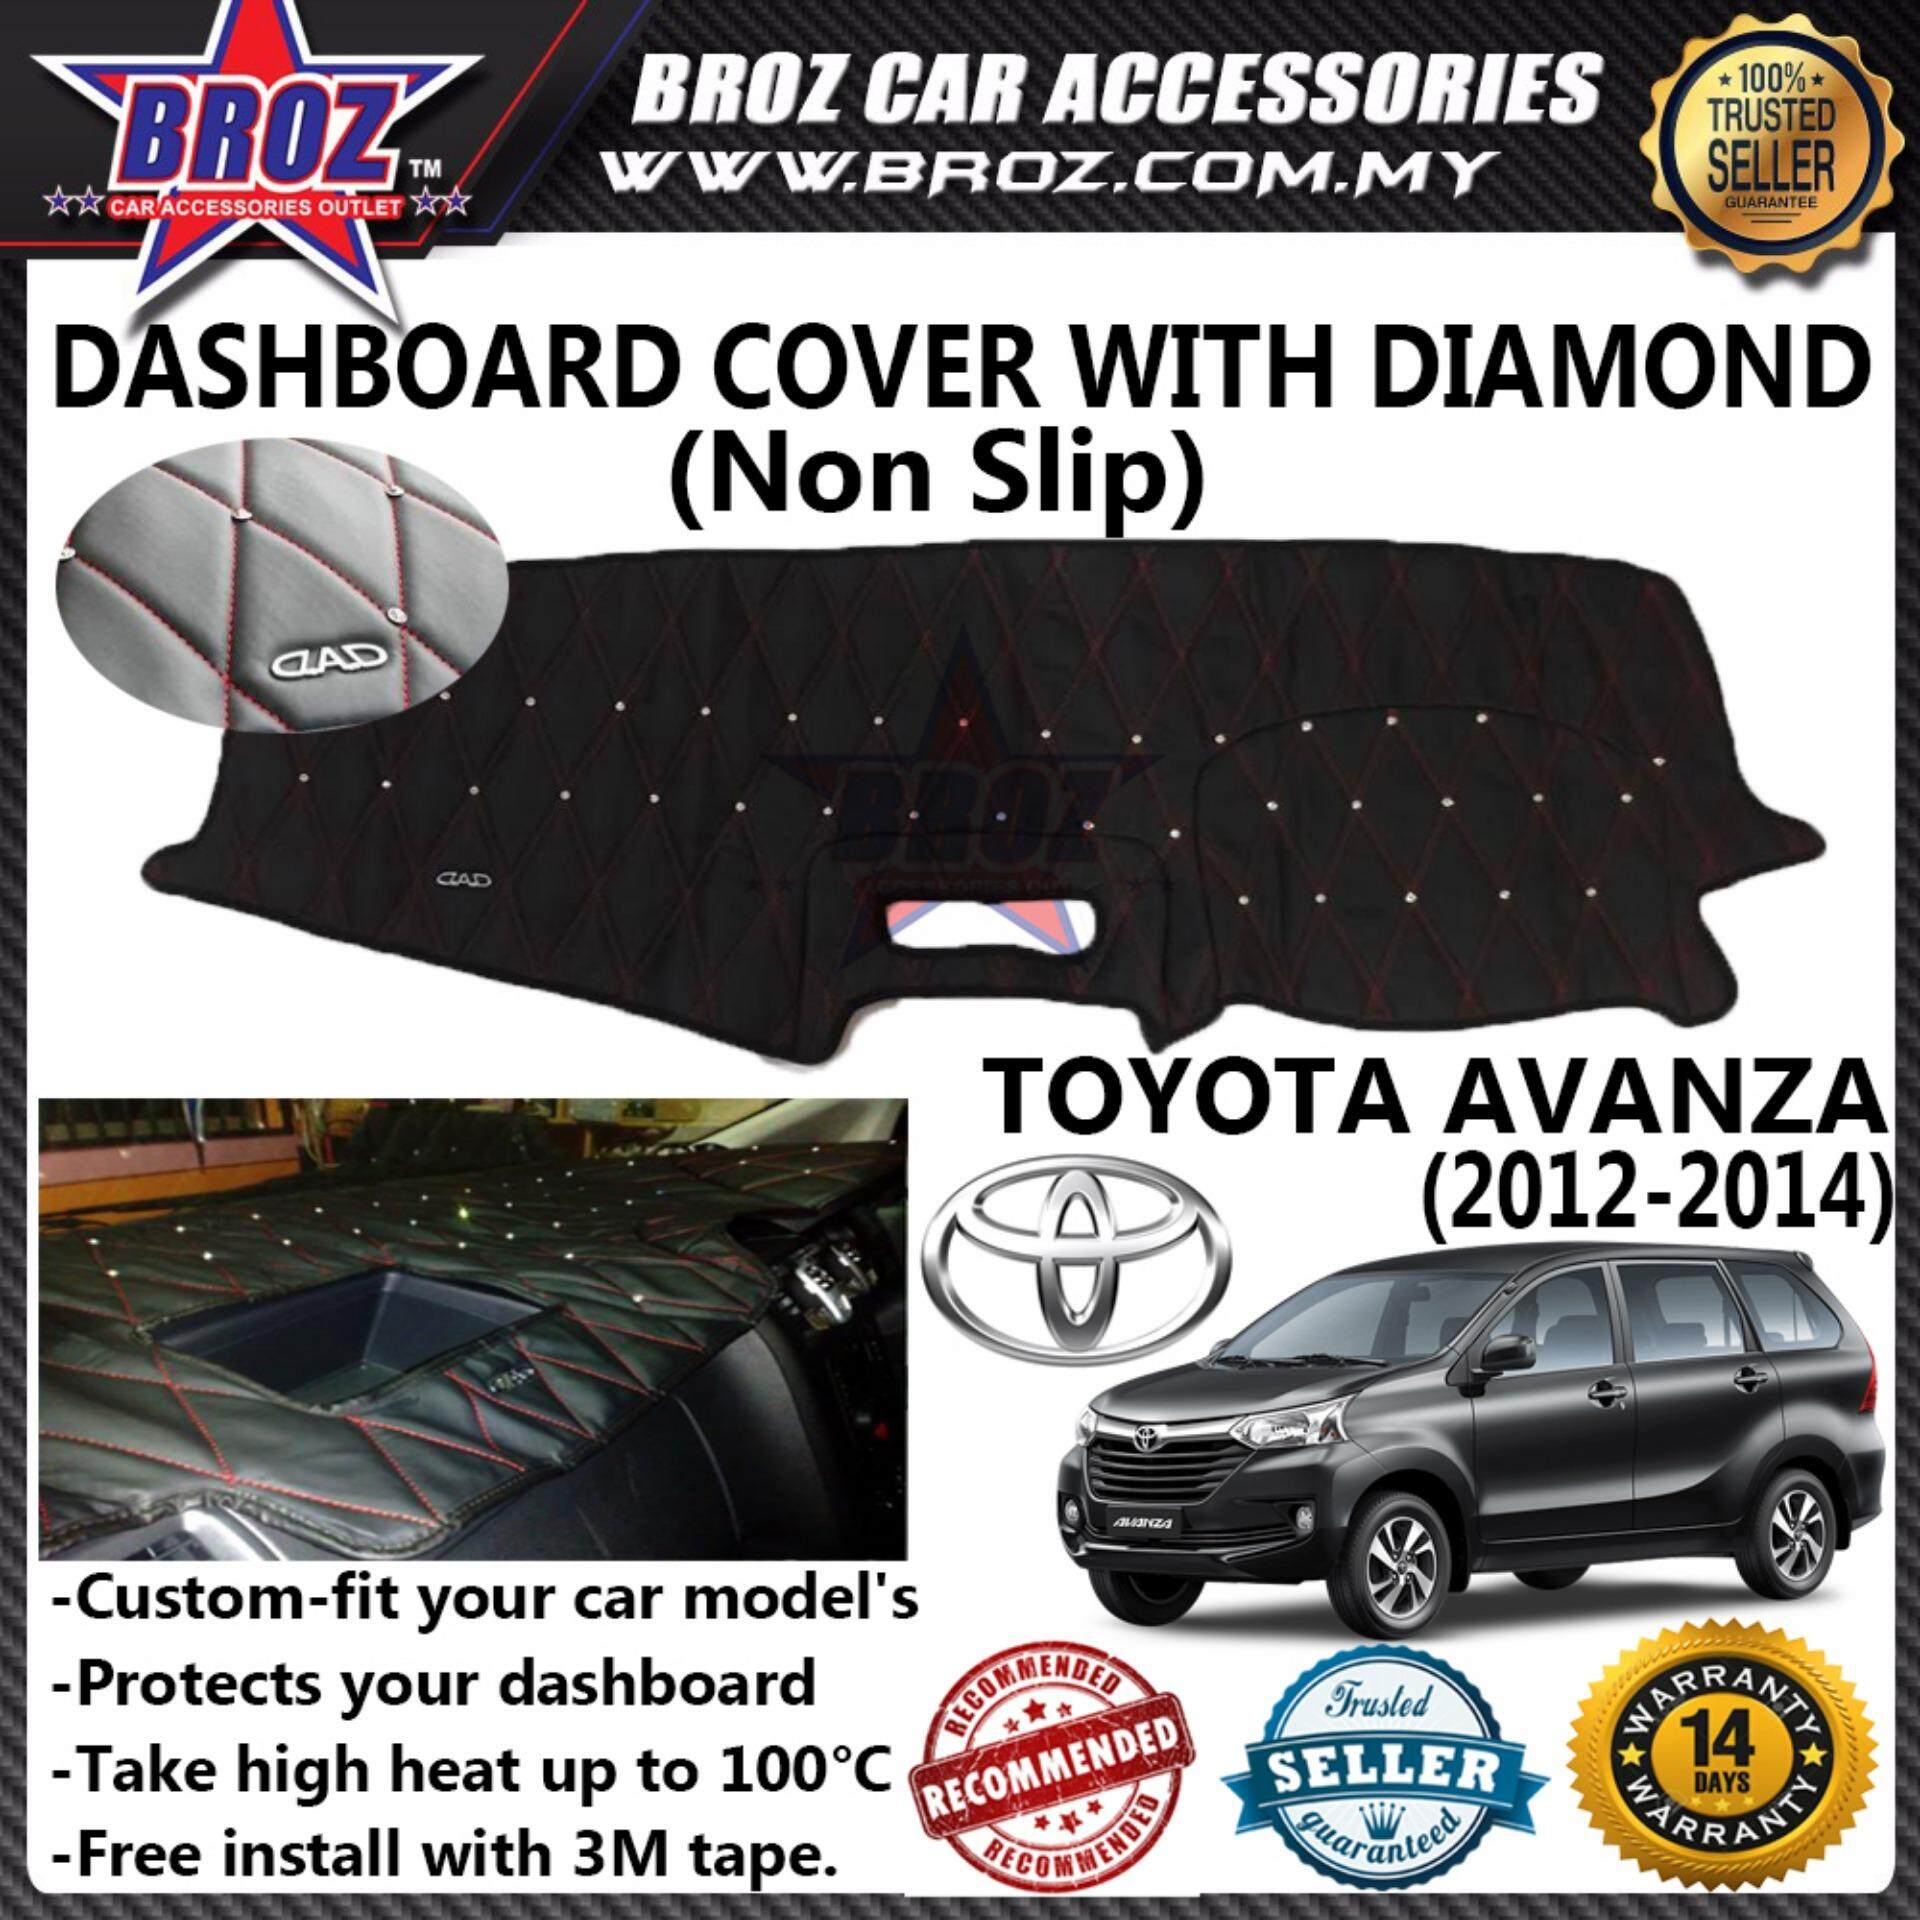 Non Slip Dashboard Cover with diamond for Toyota Avanza 2012-2014